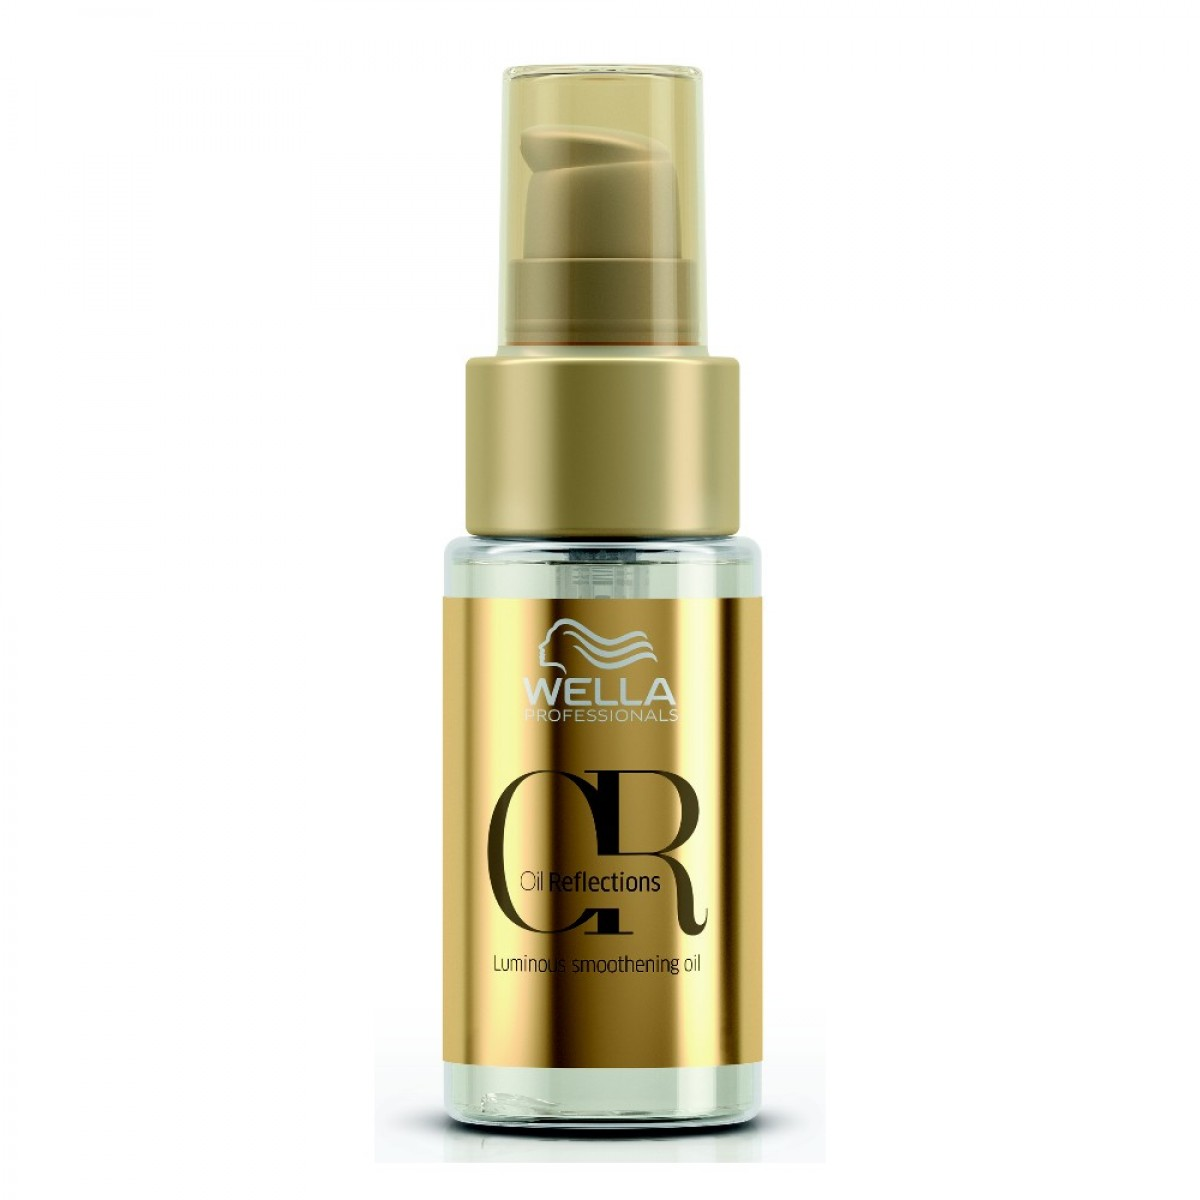 Wella Professionals Oil Reflections Luminous Smoothening Oil 100Ml